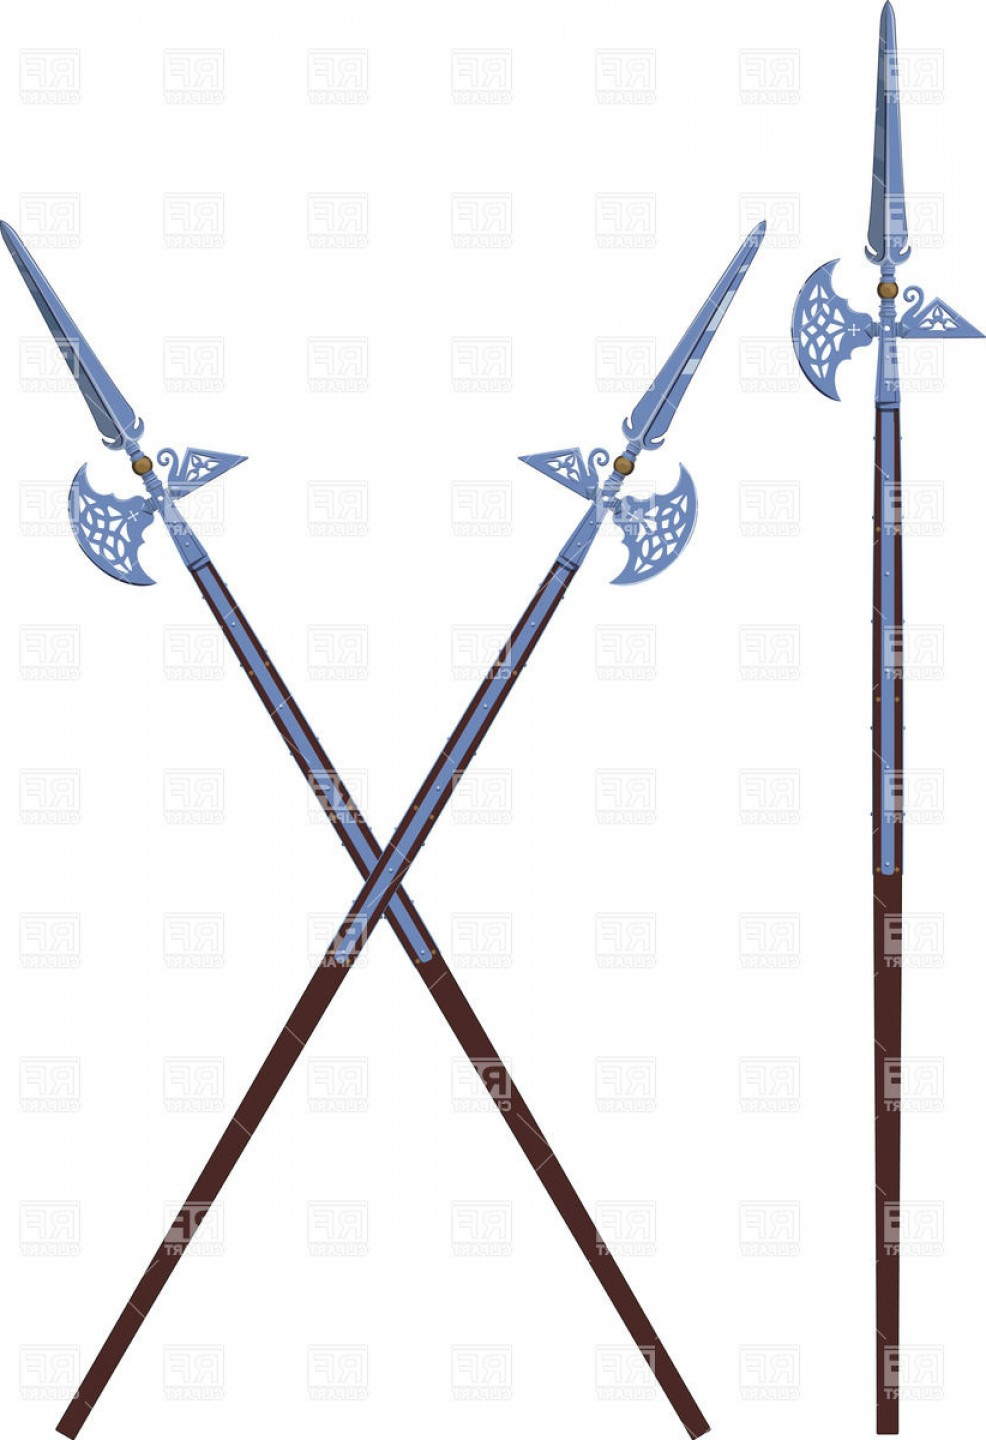 Pike Spear Vector: Two Crossed Decorated Halberds Vector Clipart